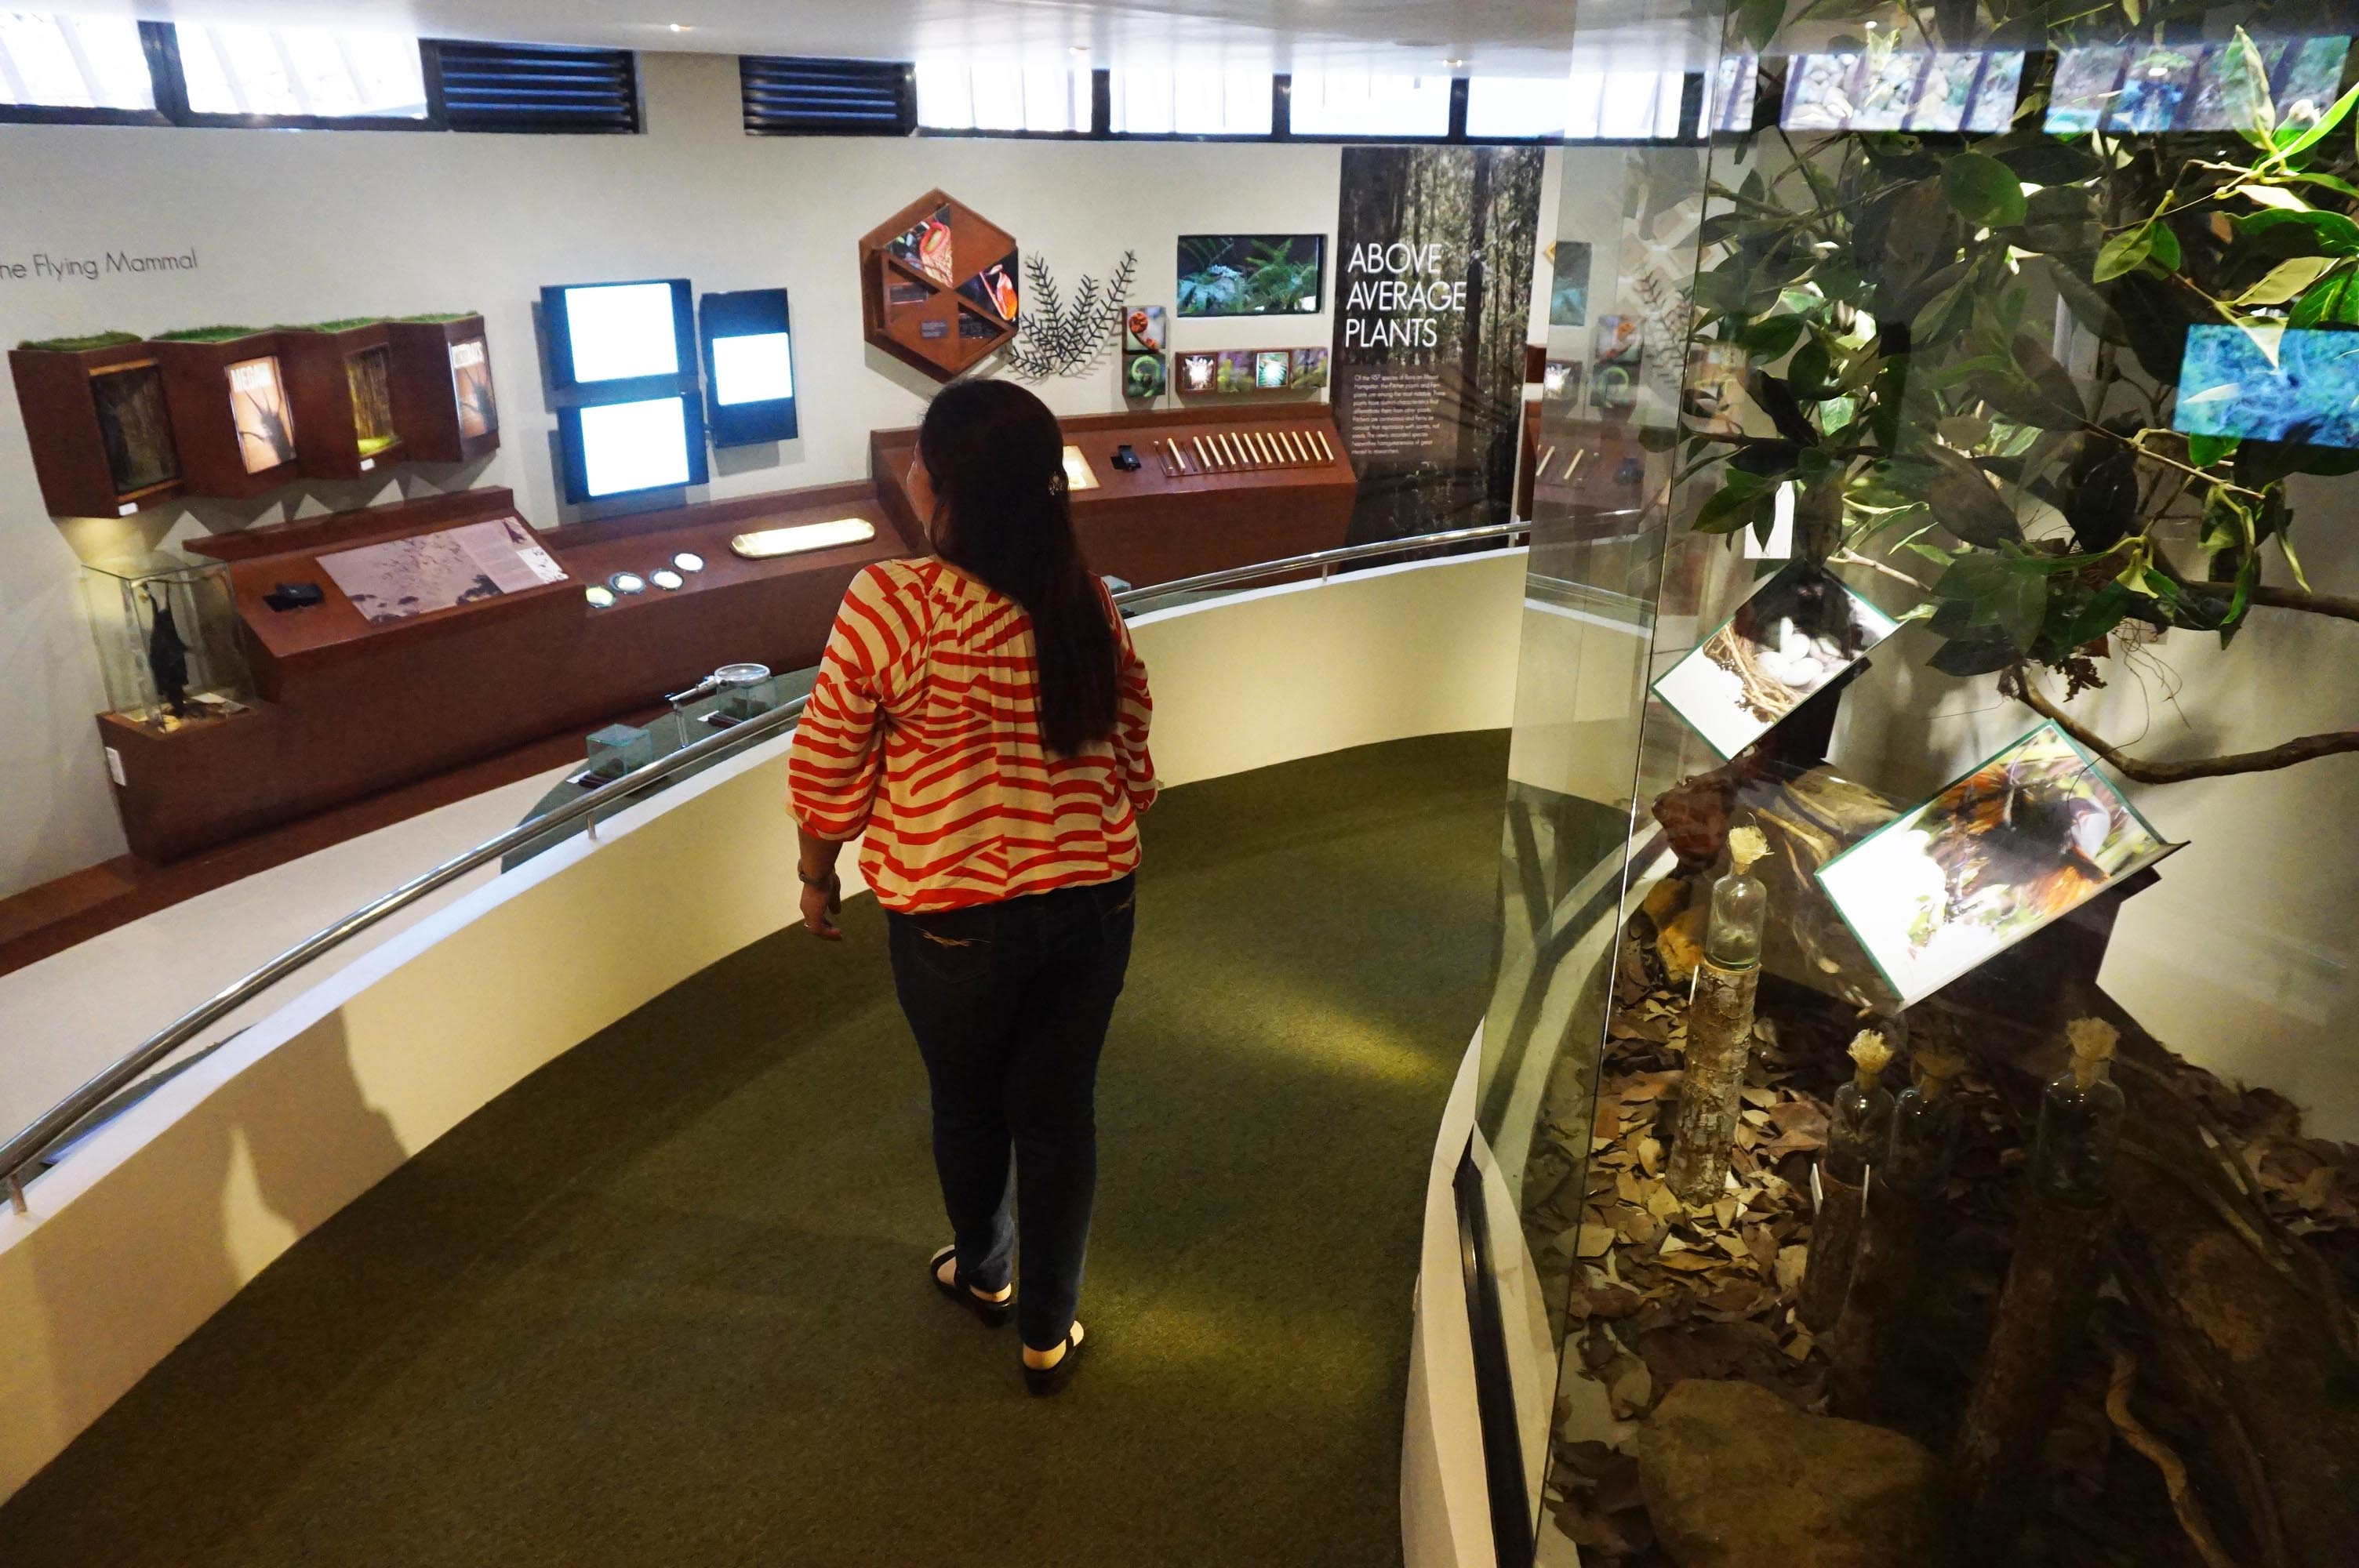 The museum is divided into different sections, all neatly arranged in the two-storey building. Photo by Louie Lapat